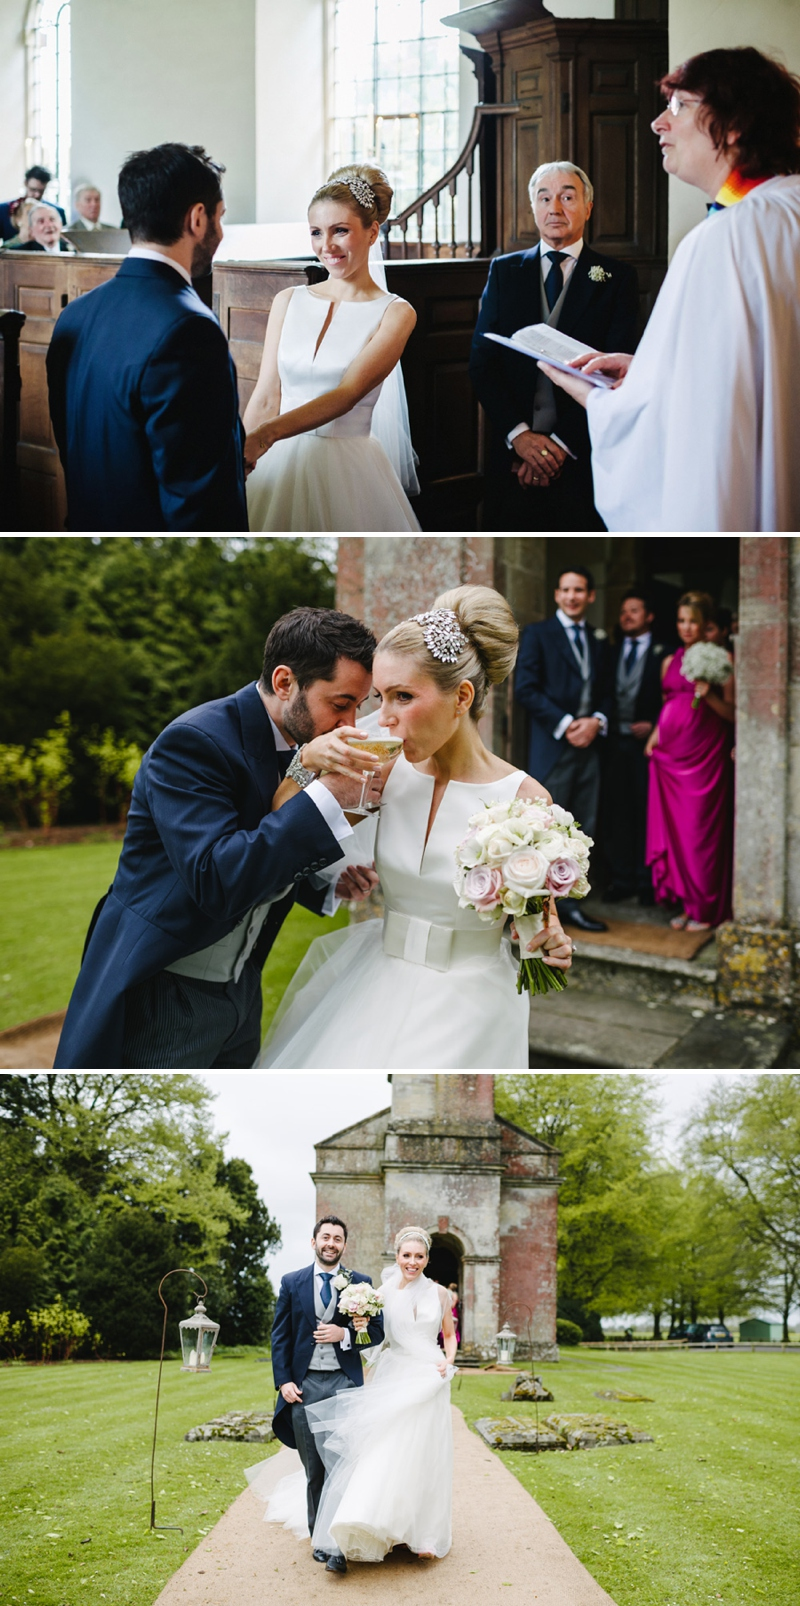 A sophisticated wedding at Babington house with Kate Spade pink shoes by Ann-Kathrin Koch_0527